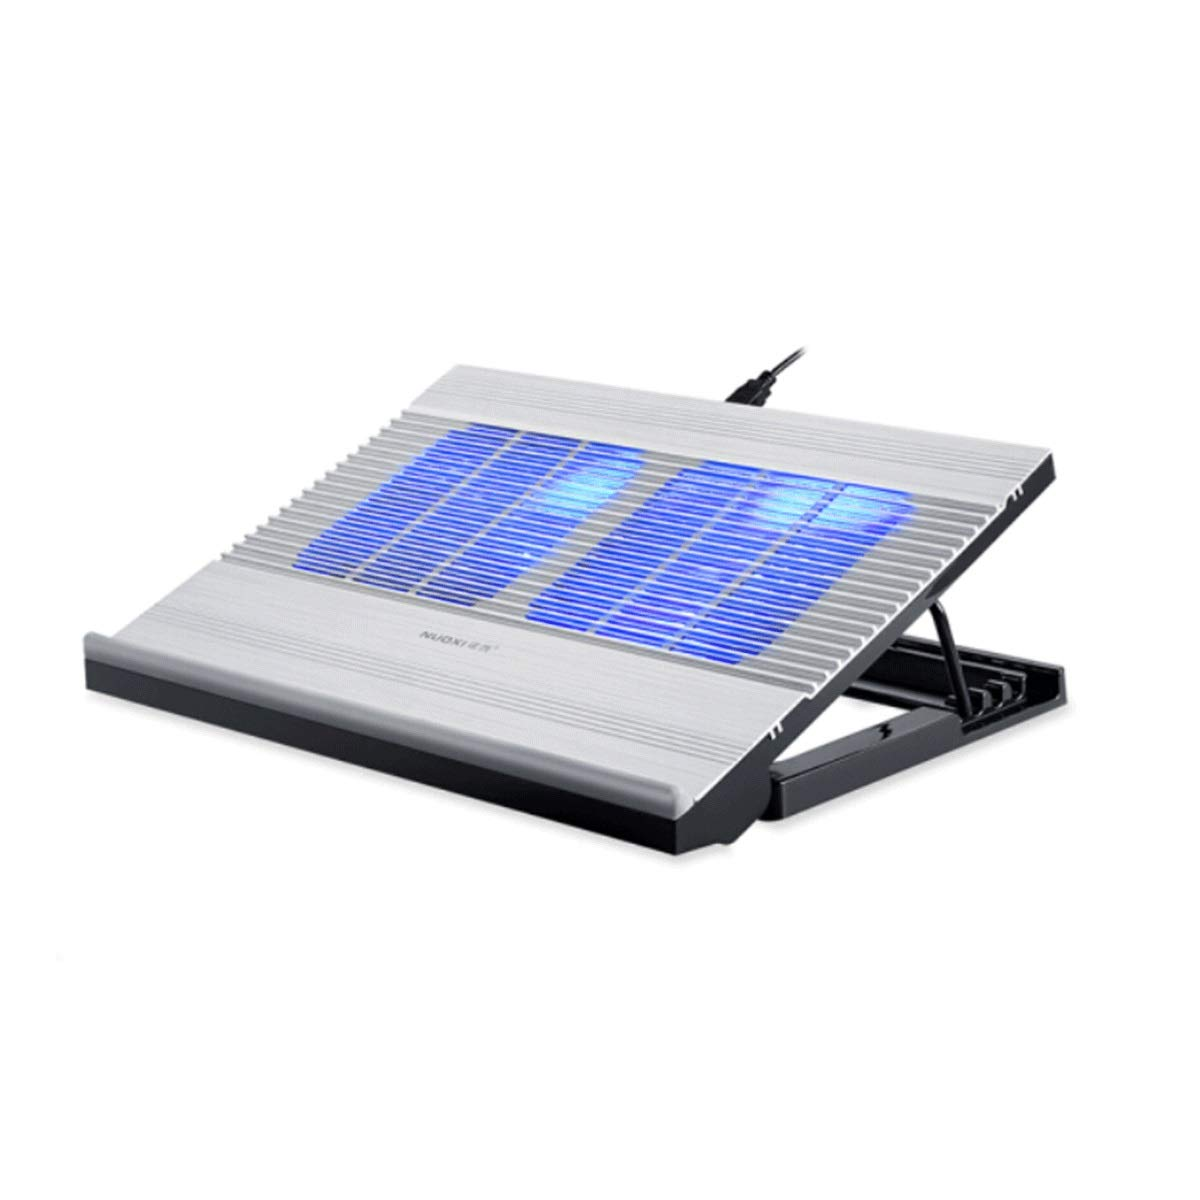 Compatible with 15.6-inch Notebook,Light and Stylish Hongyushanghang Notebook Cooler Color : Silver Metal Base Cooling Pad Heat Sink